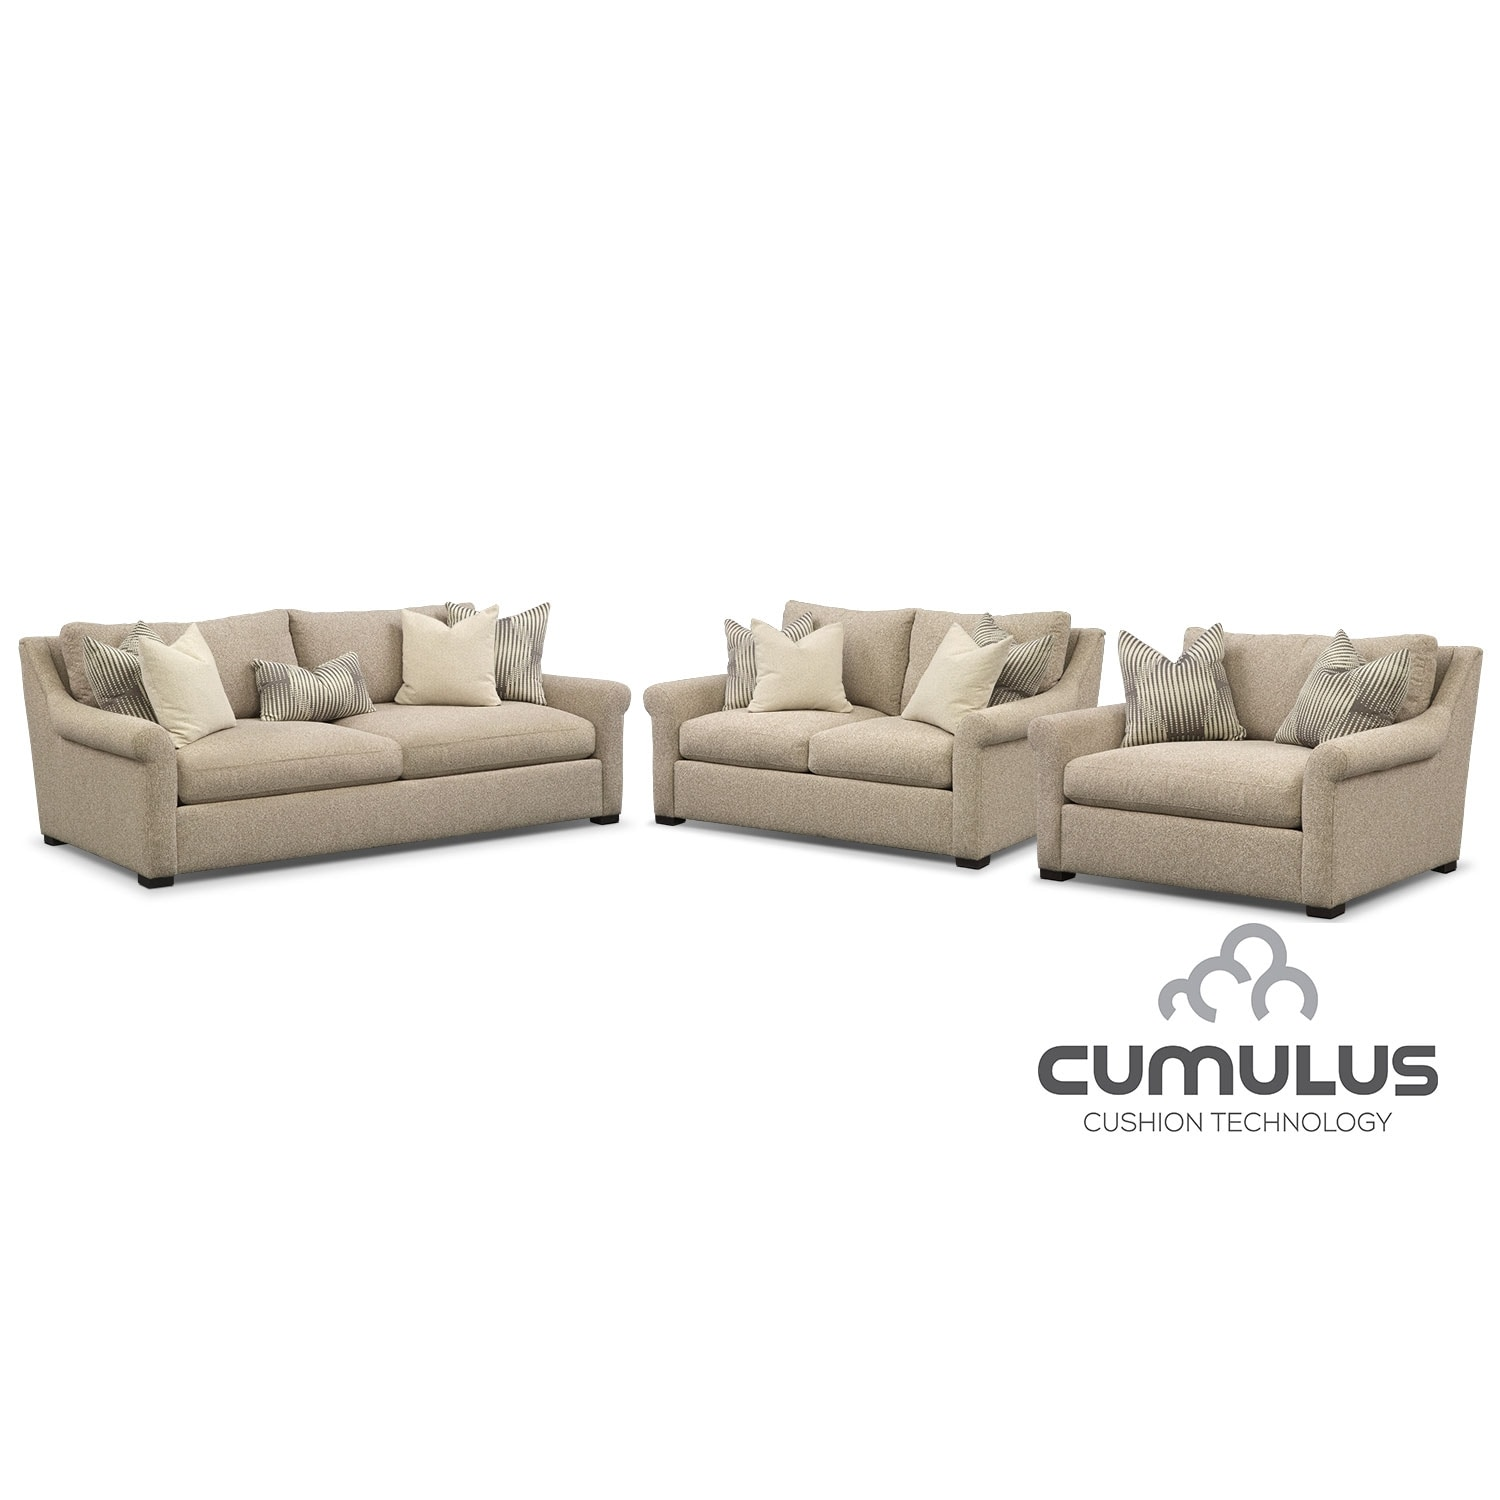 Roberston Cumulus Sofa, Loveseat and Chair and a Half Set - Beige